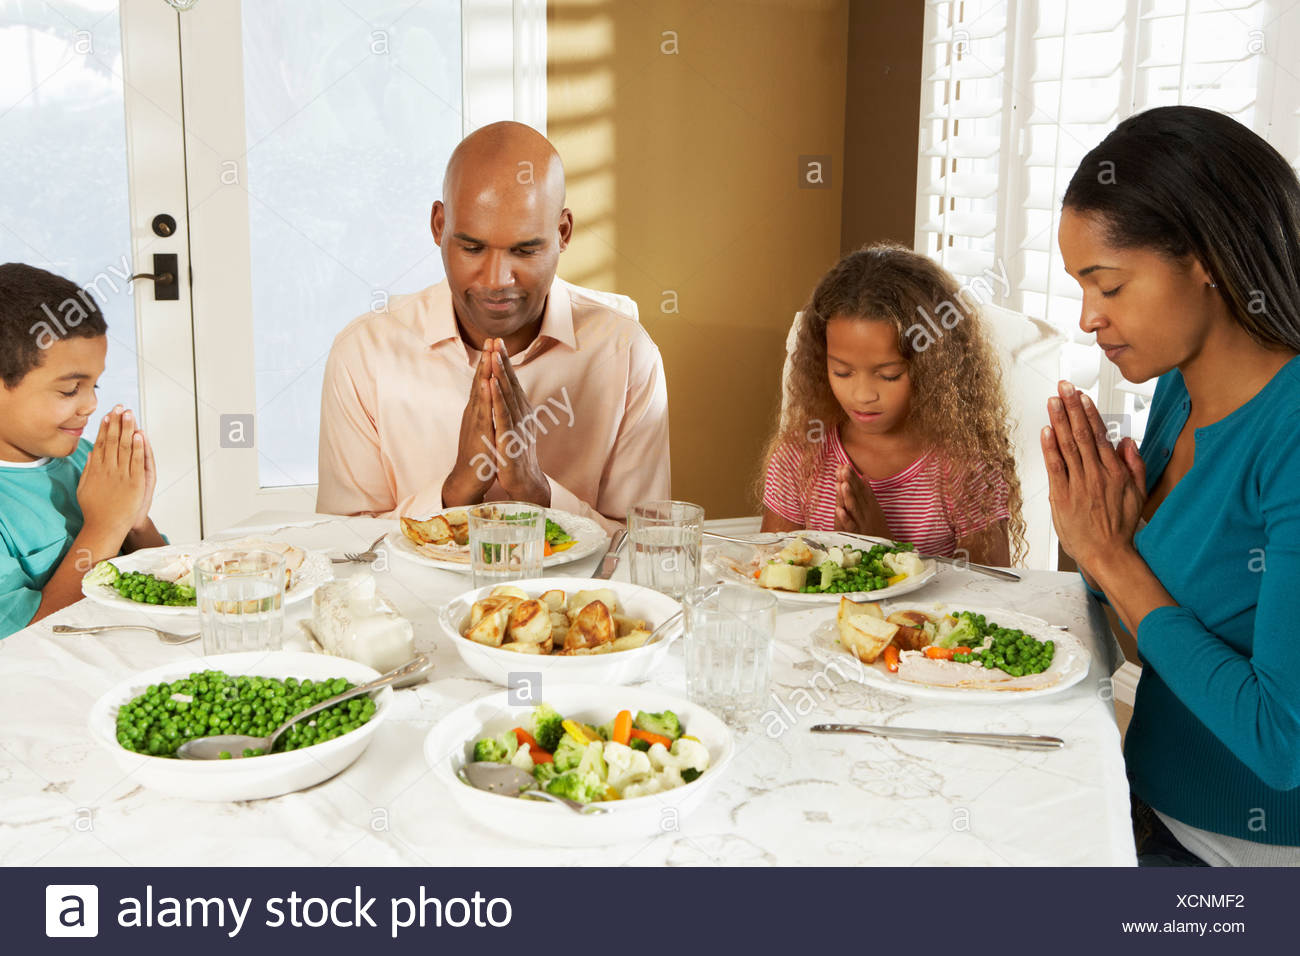 Family Saying Grace Before Meal At Home - Stock Image